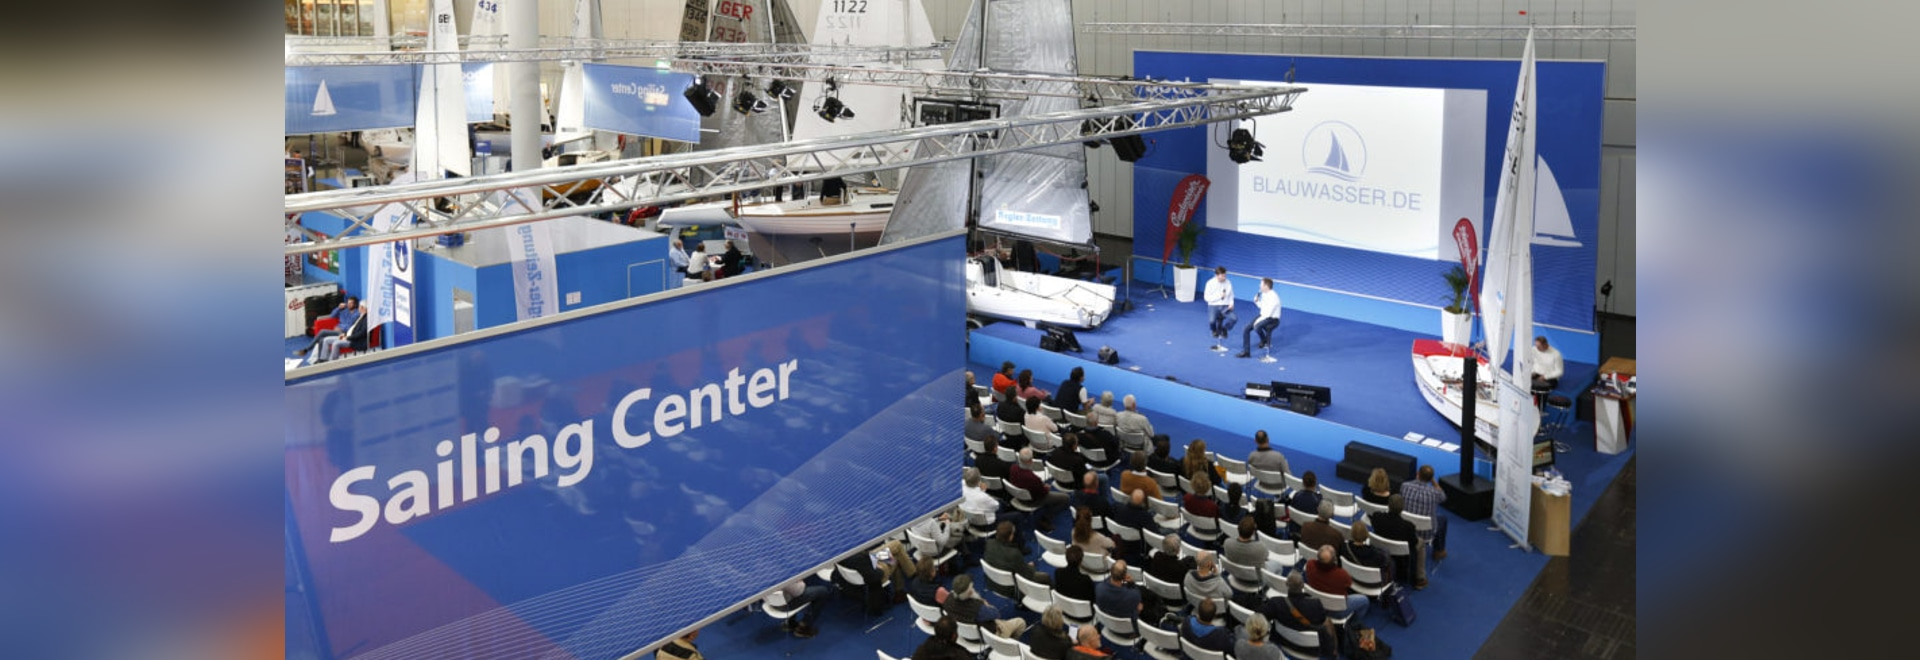 The Sailing Center presents legends, adventures & unique sailing experiences around the fascination of sailing